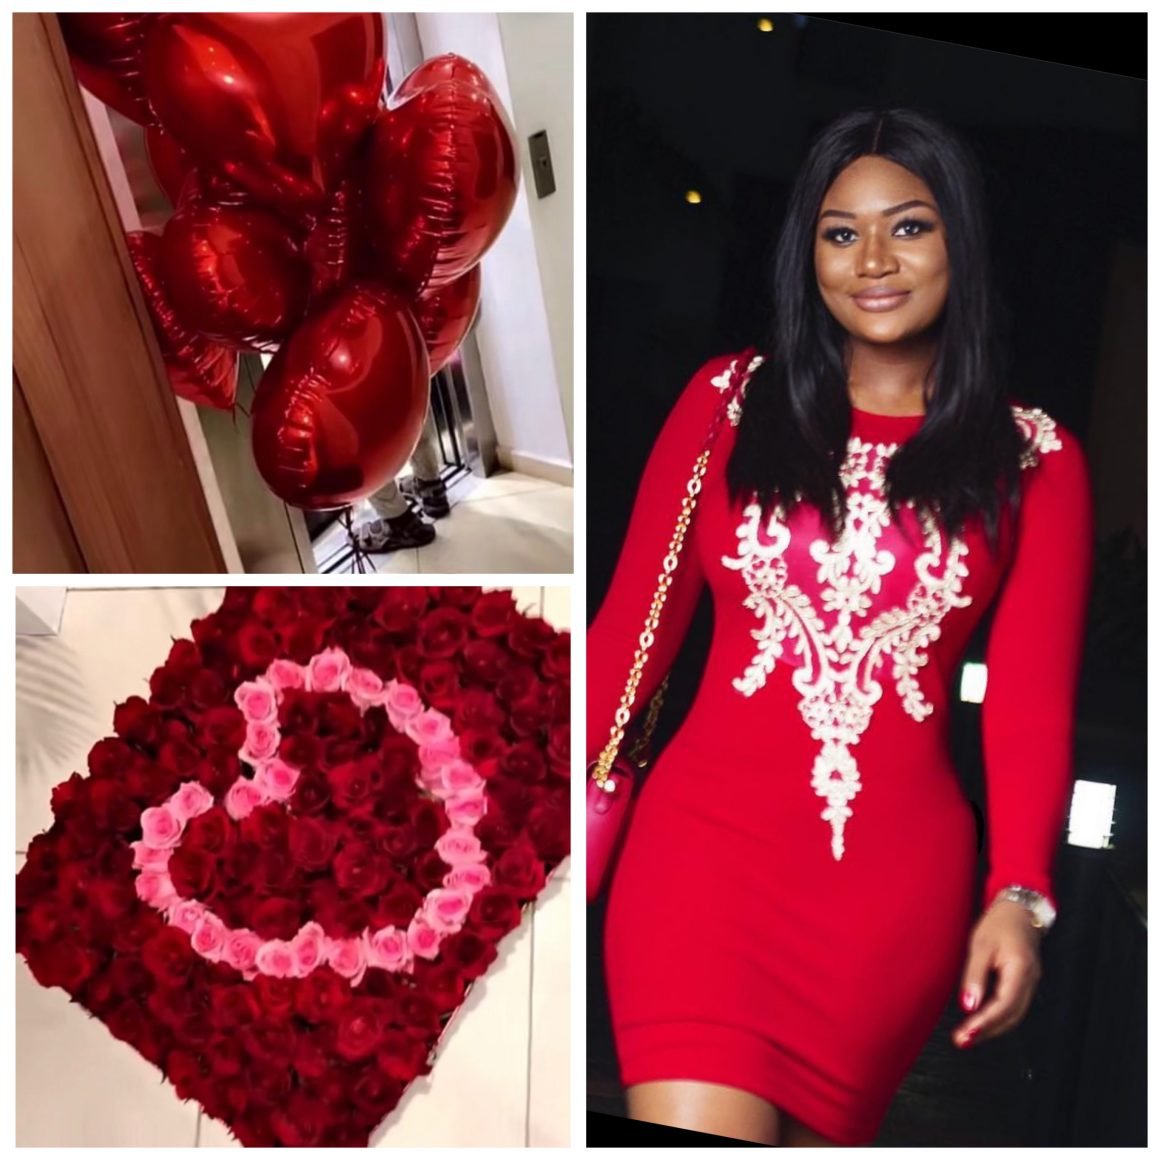 valentine'sday2021:-sandra-ankobiah-received-250-roses-from-an-anonymous-sender